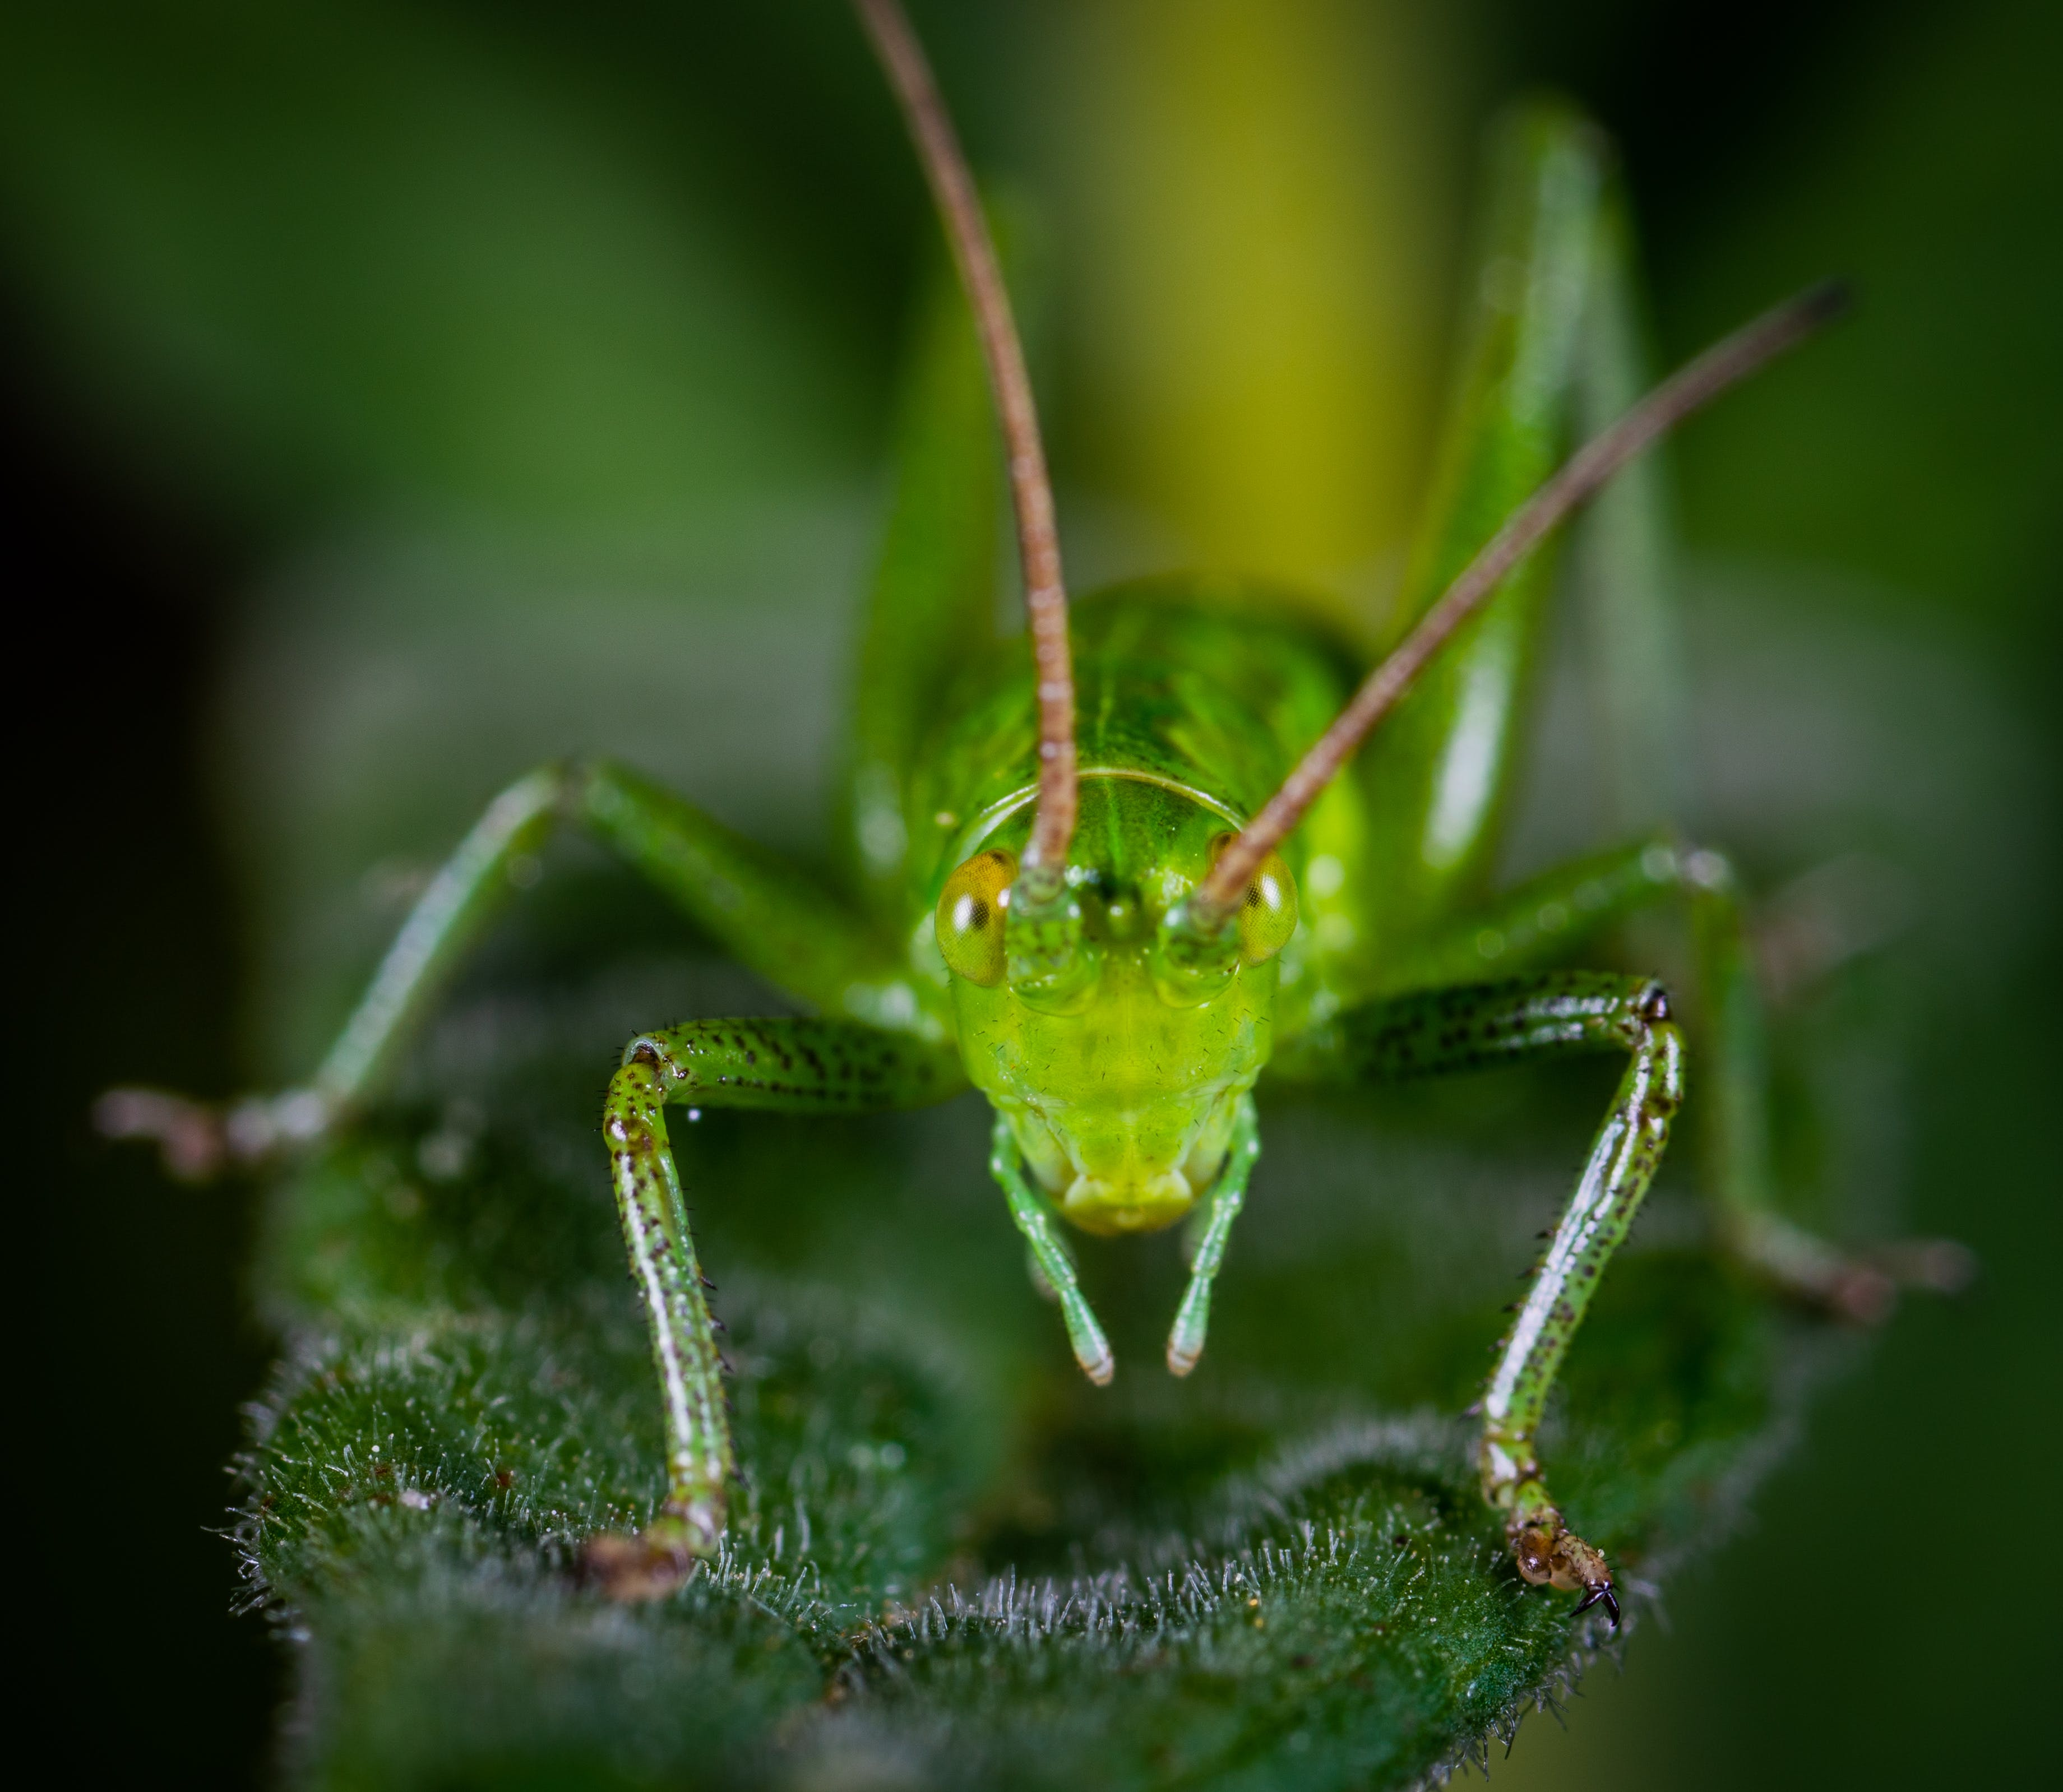 Macro Shot of Green Grasshopper on Leaf